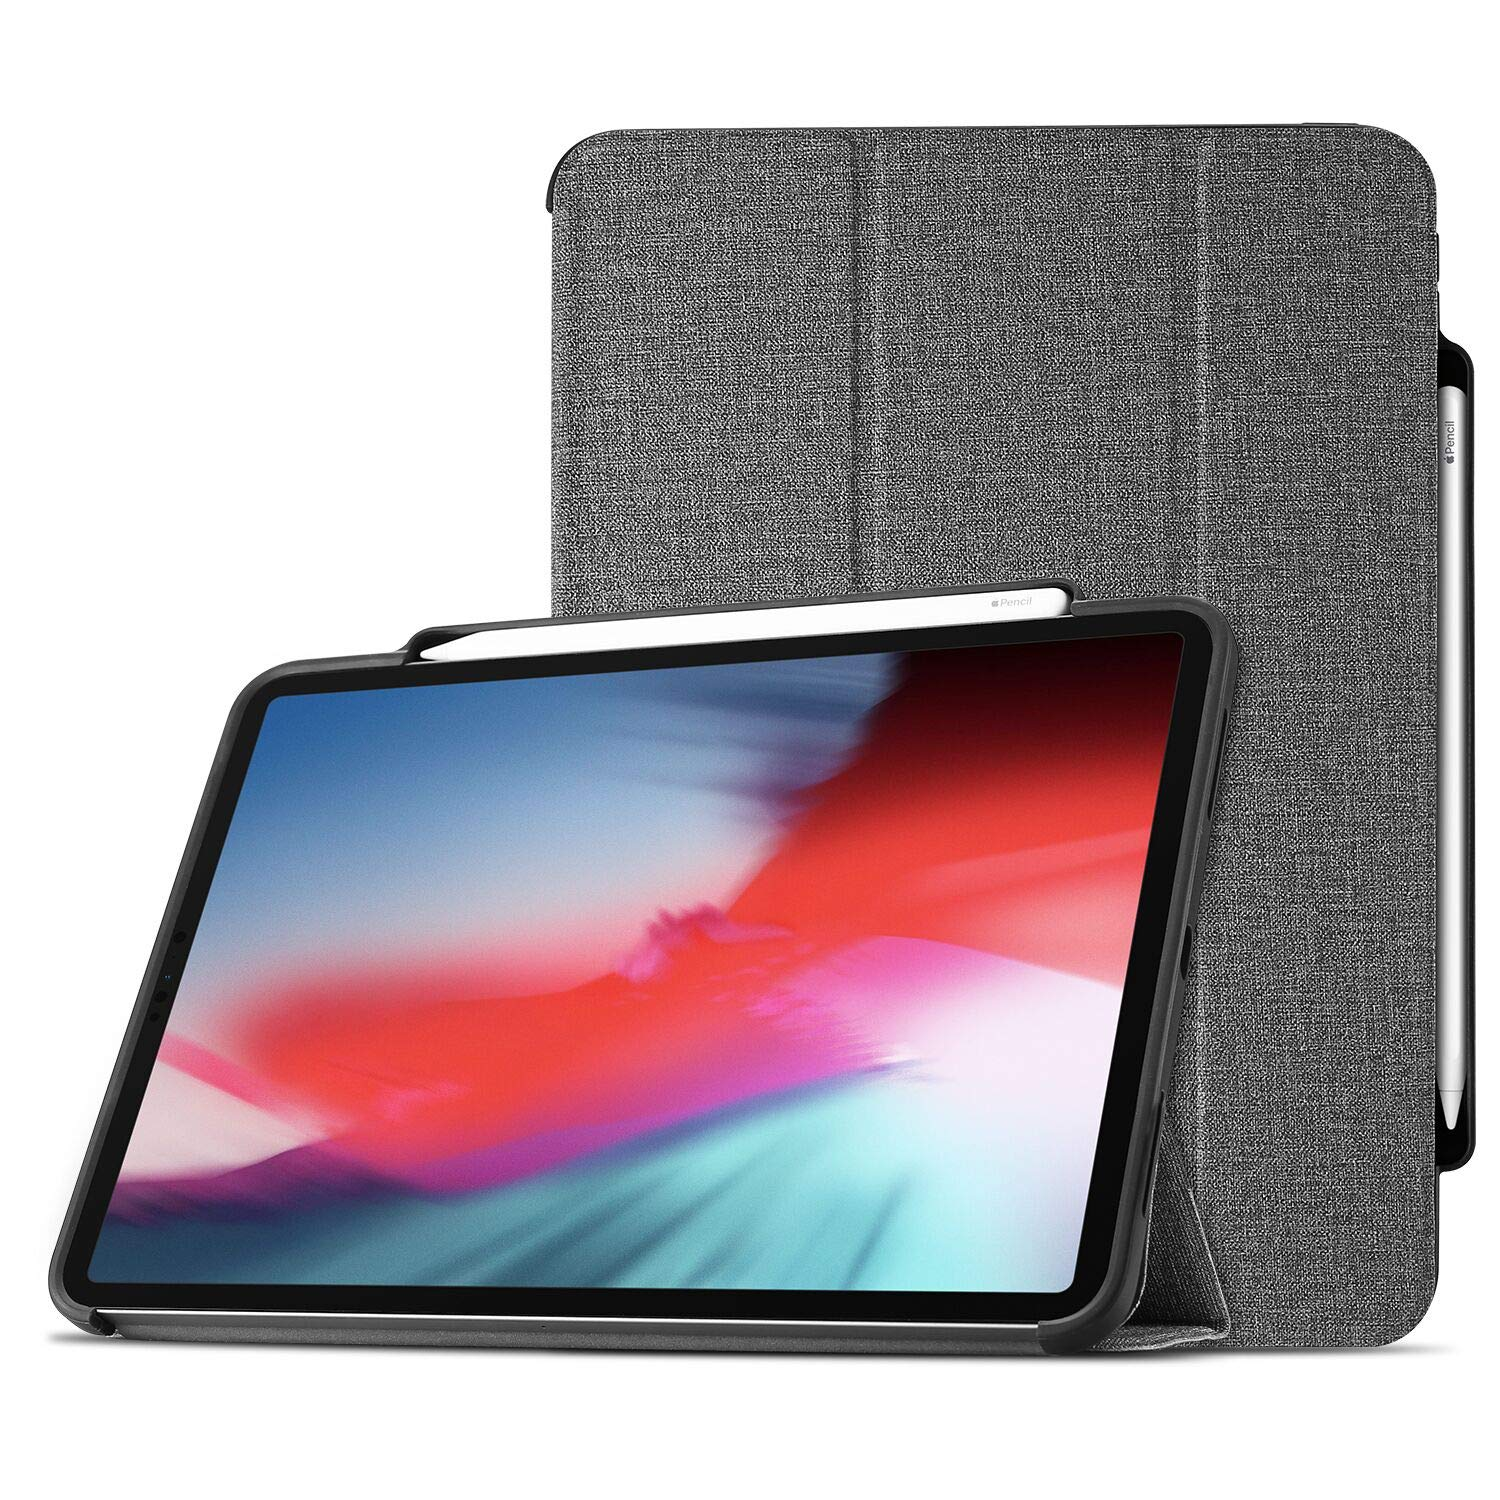 ProCase iPad Pro 12.9 Case 2018 with Apple Pencil Holder [Support Apple Pencil Charging], Protective Smart Cover Shell Stand Folio Case for Apple iPad Pro 12.9 Inch 3rd Gen 2018 Release –Grey